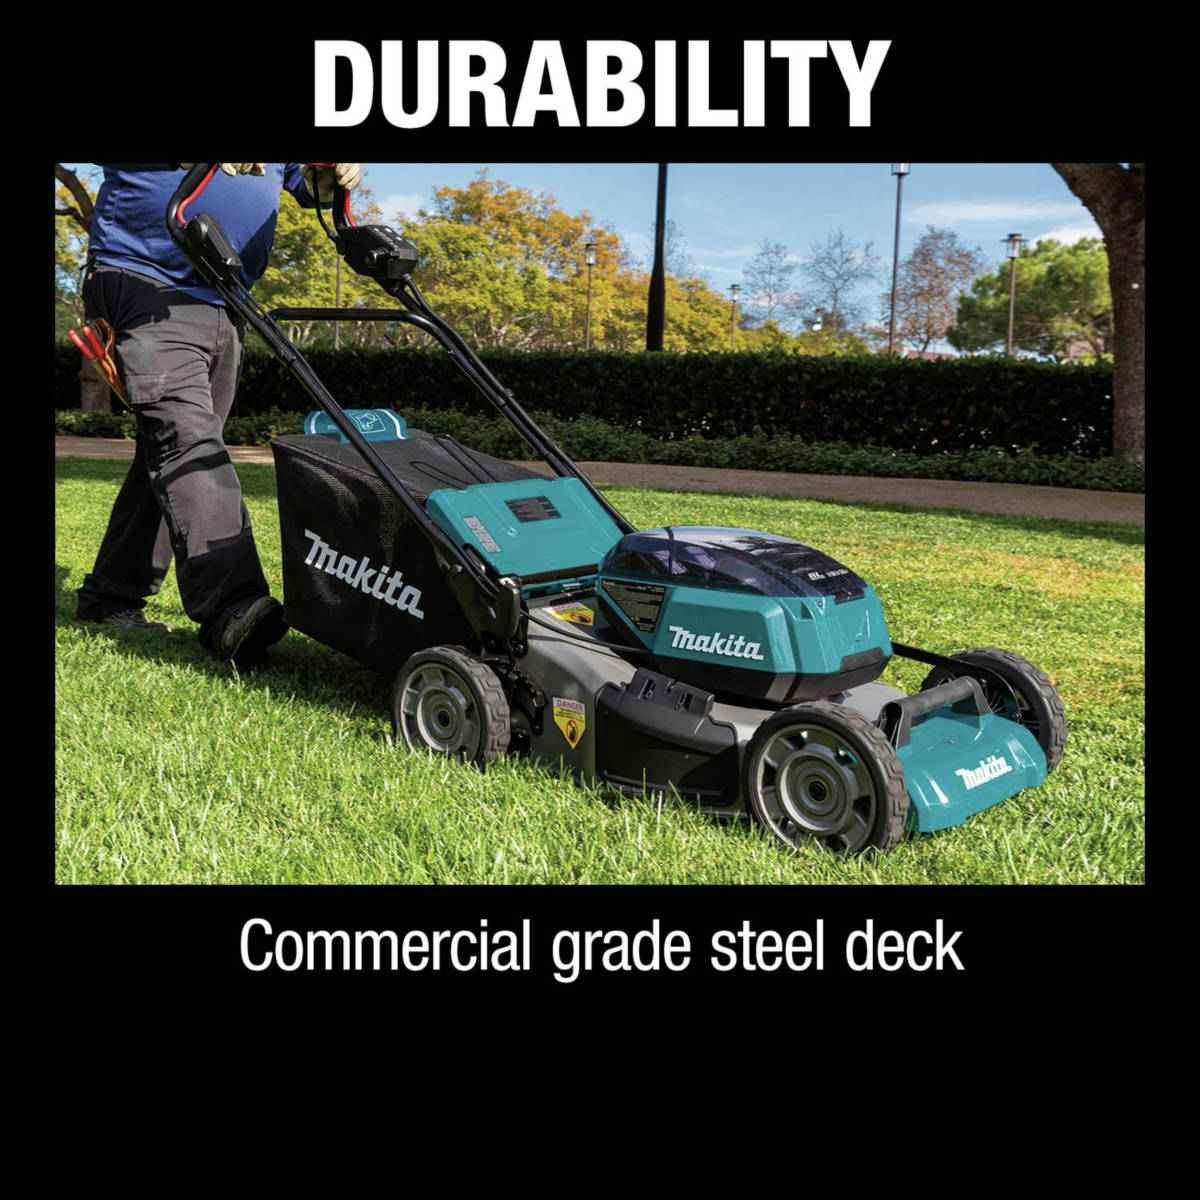 18V X2 (36V) LXT Lawn Mower has 4 bay battery system for 2x run time